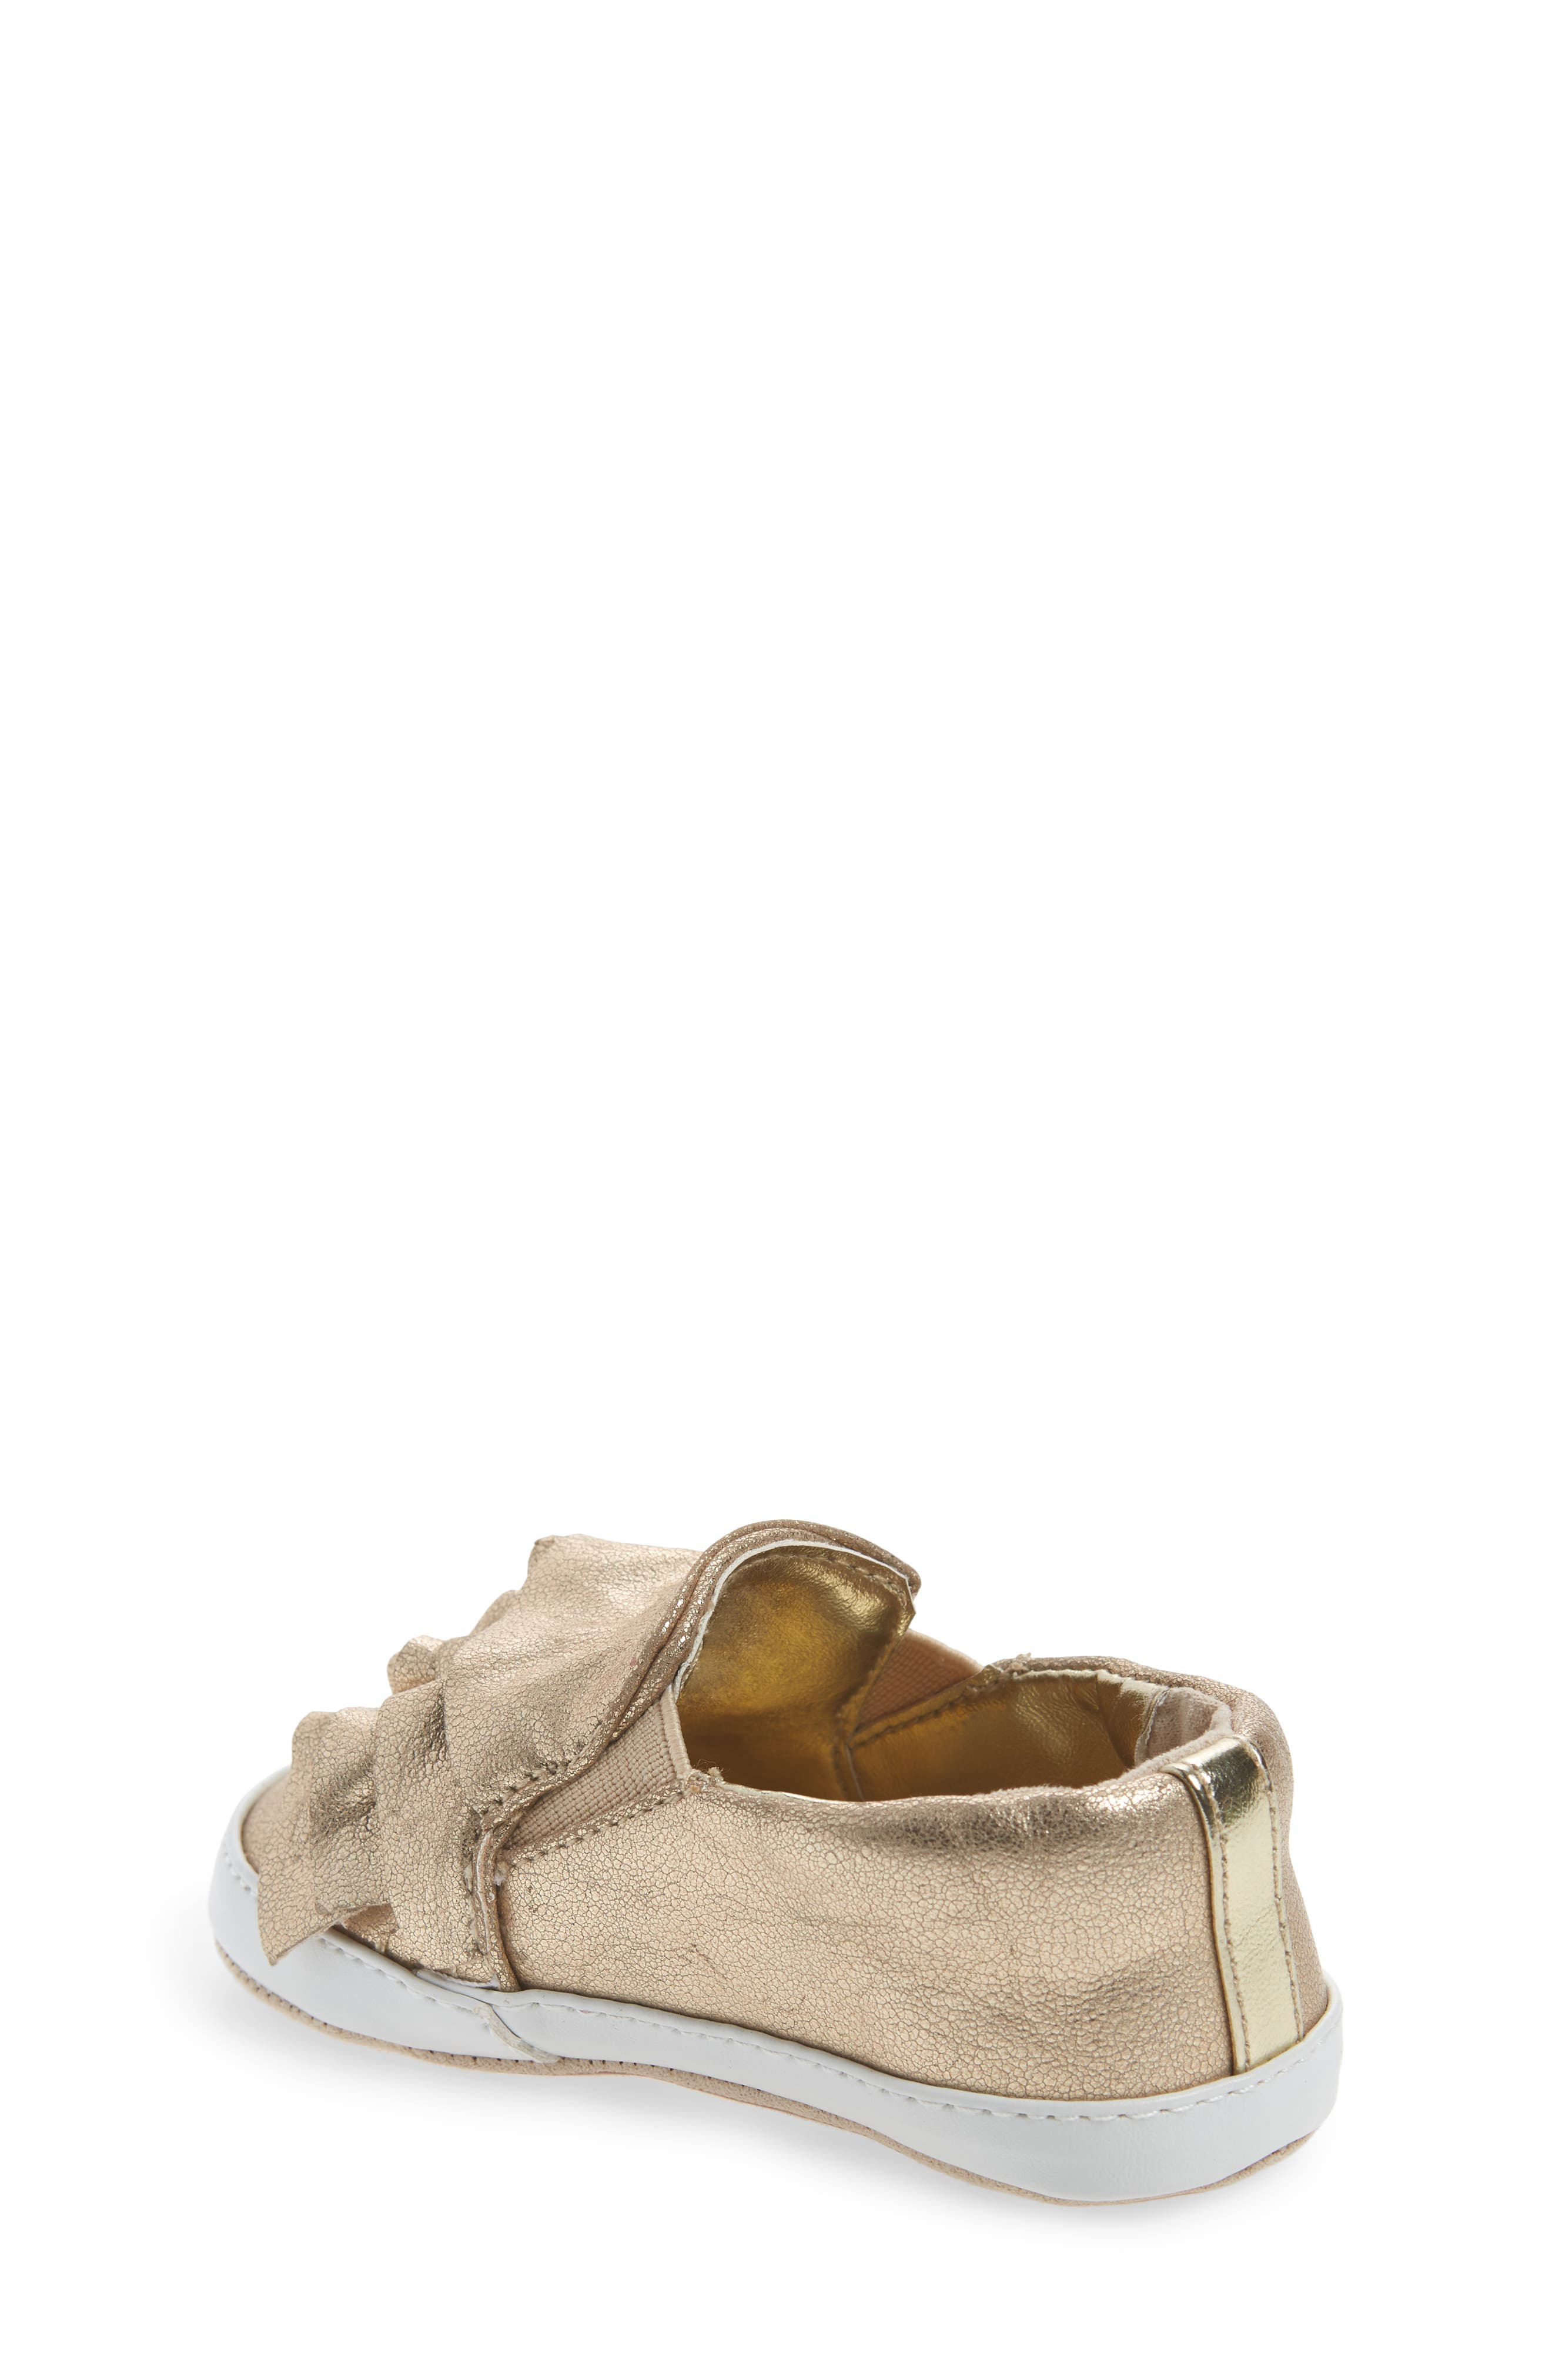 Ruffle Metallic Kam Slip-On Sneaker,                             Alternate thumbnail 2, color,                             Gold